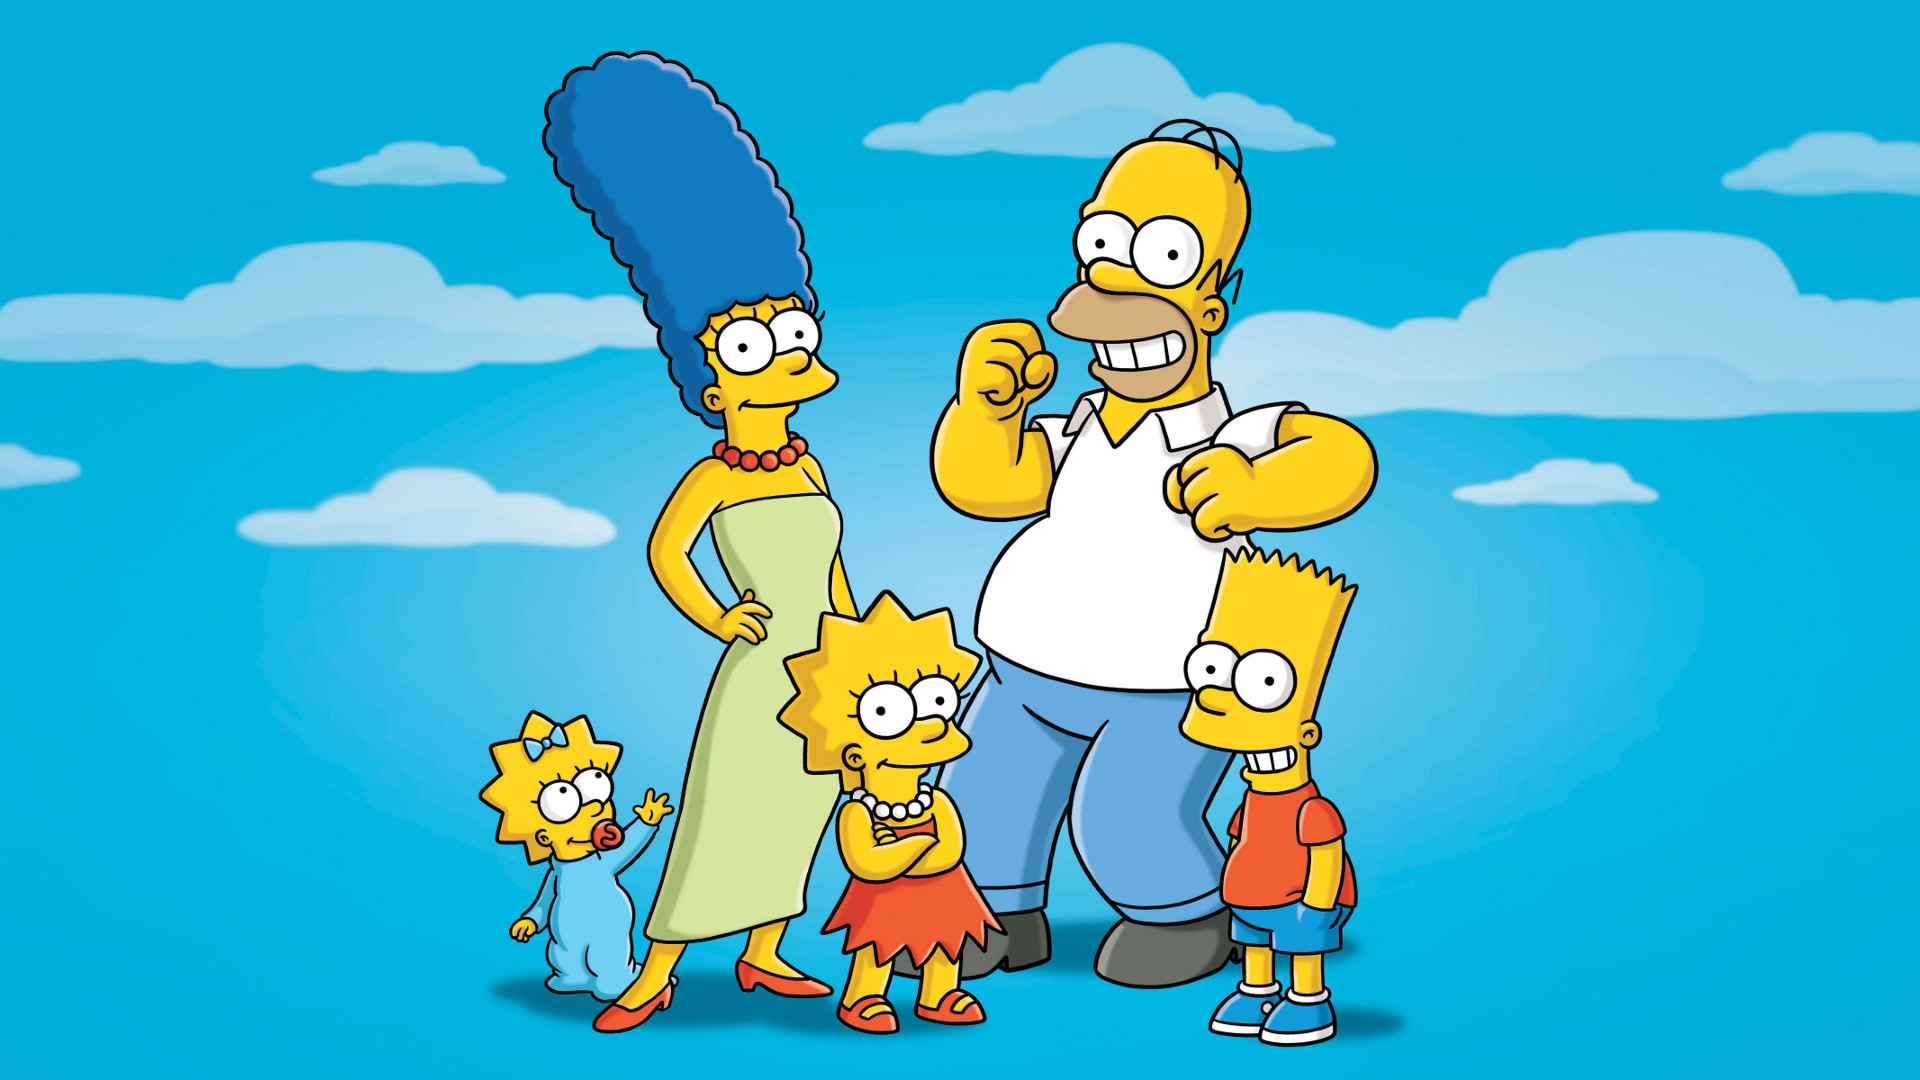 The Simpsons   Wallpaper High Definition High Quality 1920x1080